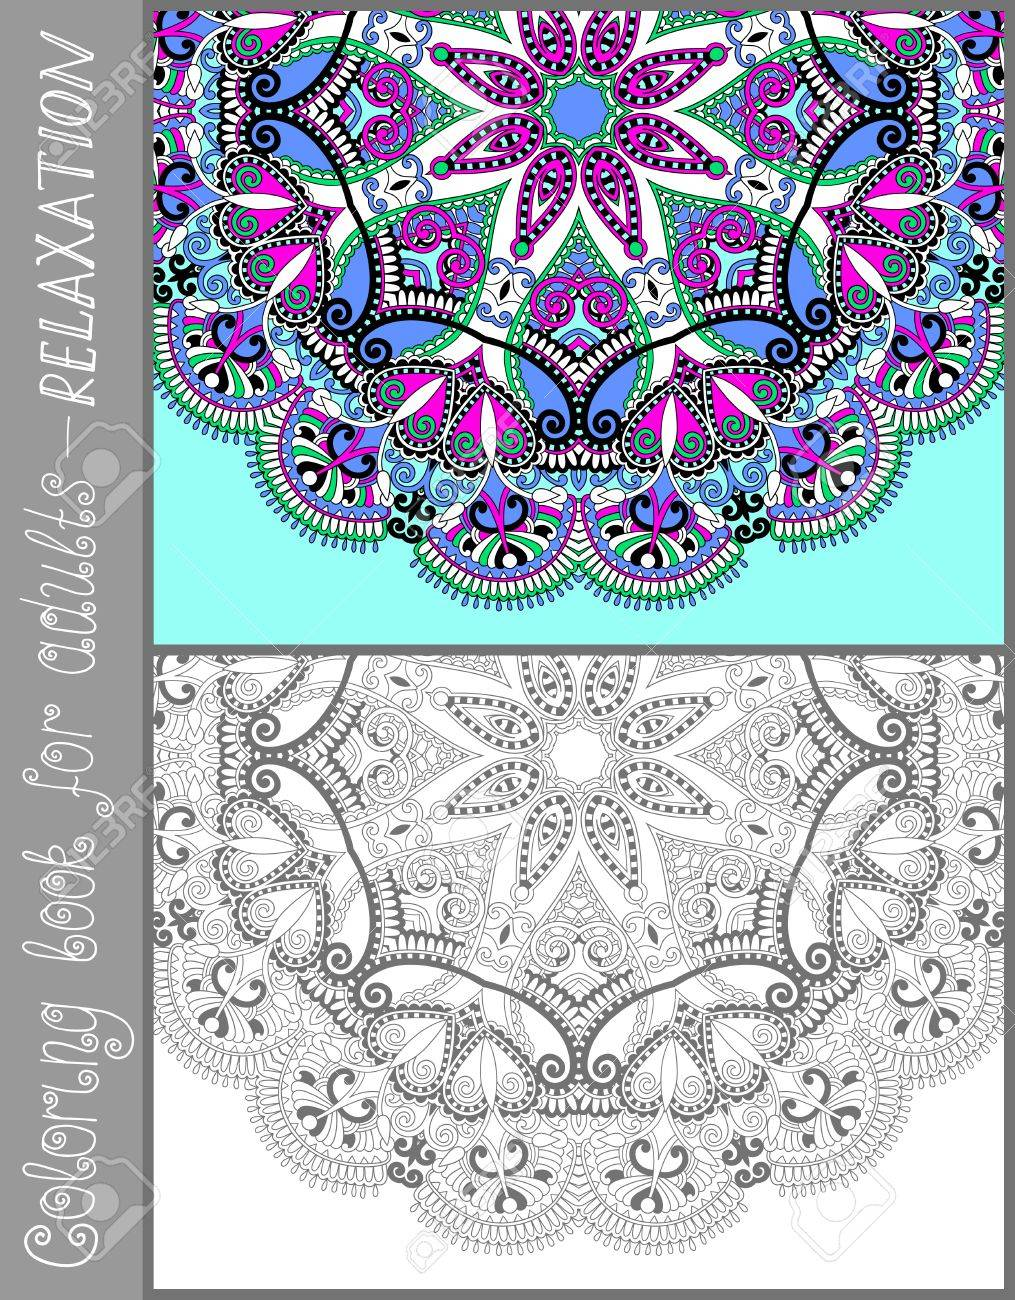 Flower designs coloring book - Unique Coloring Book Page For Adults Flower Paisley Design Joy To Older Children And